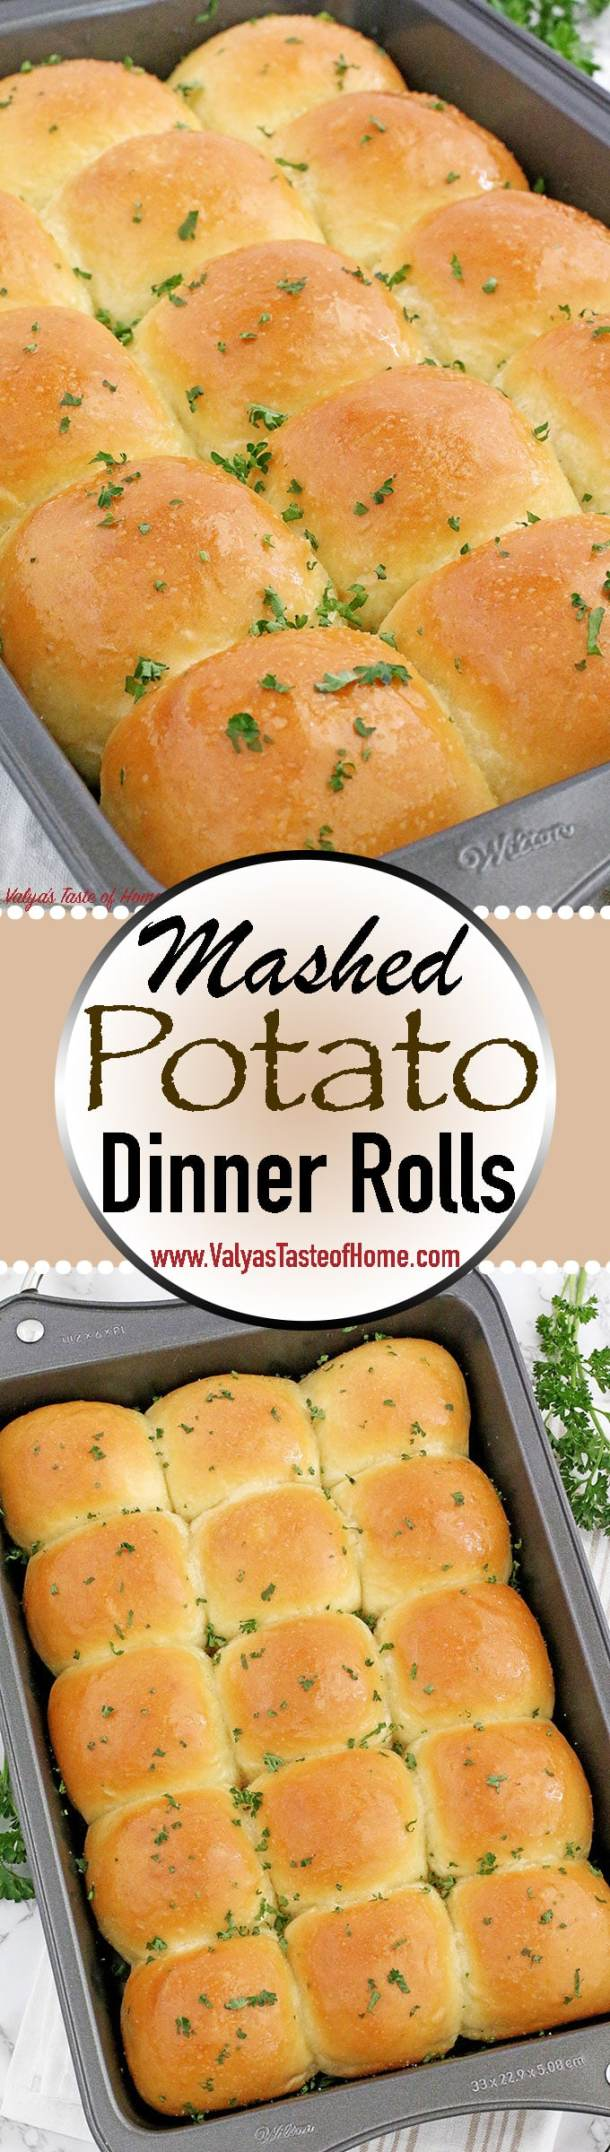 Do you have leftover mashed potatoes? Do not throw it away! Save it and put it into good use. These super soft as a brand-new pillow Mashed Potato Dinner Rolls are comforting, flavorful, light, tender, fluffy and absolutely amazing! #dinnerrolls #easyrecipe #familyfavorite #kidfriendly | www.valyastasteofhome.com